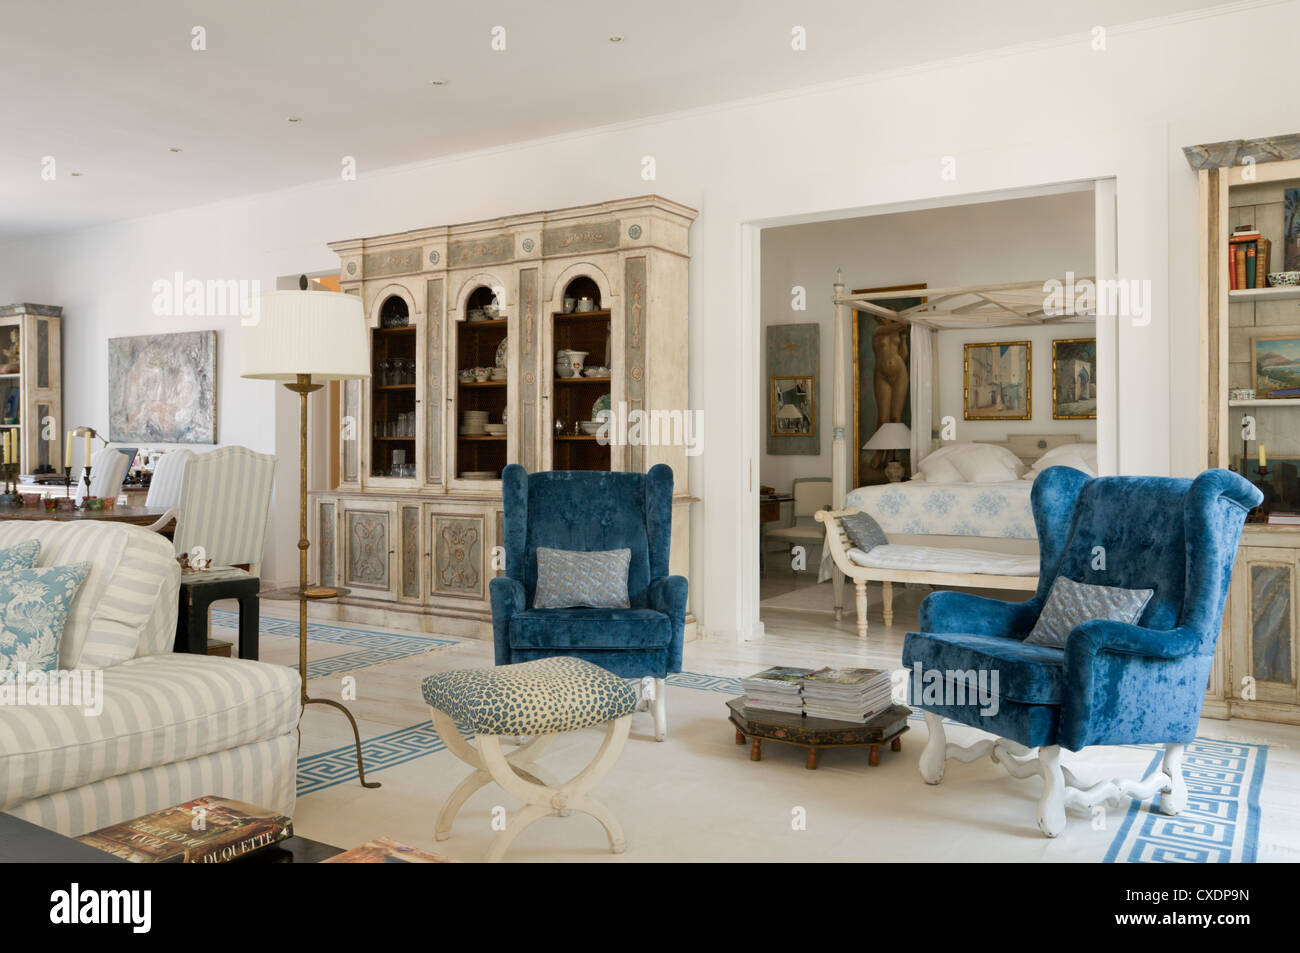 Colonial Living Room With Blue Chairs In Mallorca Stock